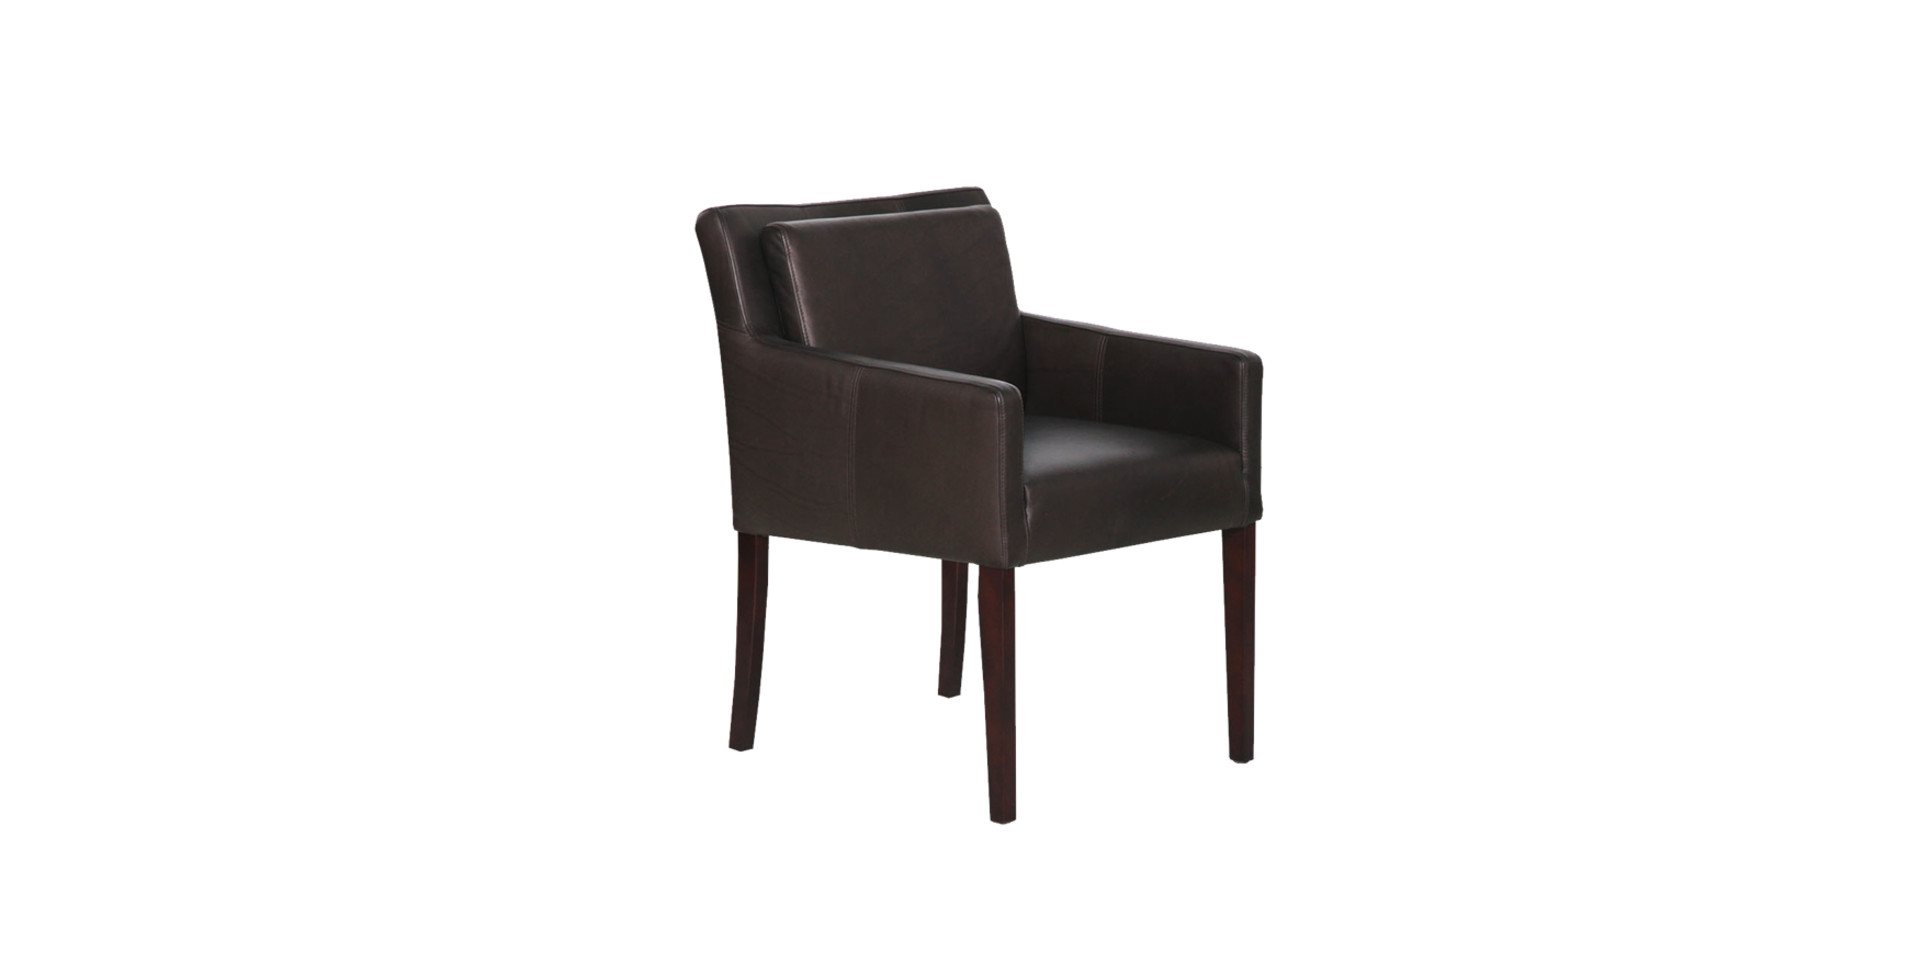 sits-venezia-fauteuil-chair_aniline_dark_brown_2